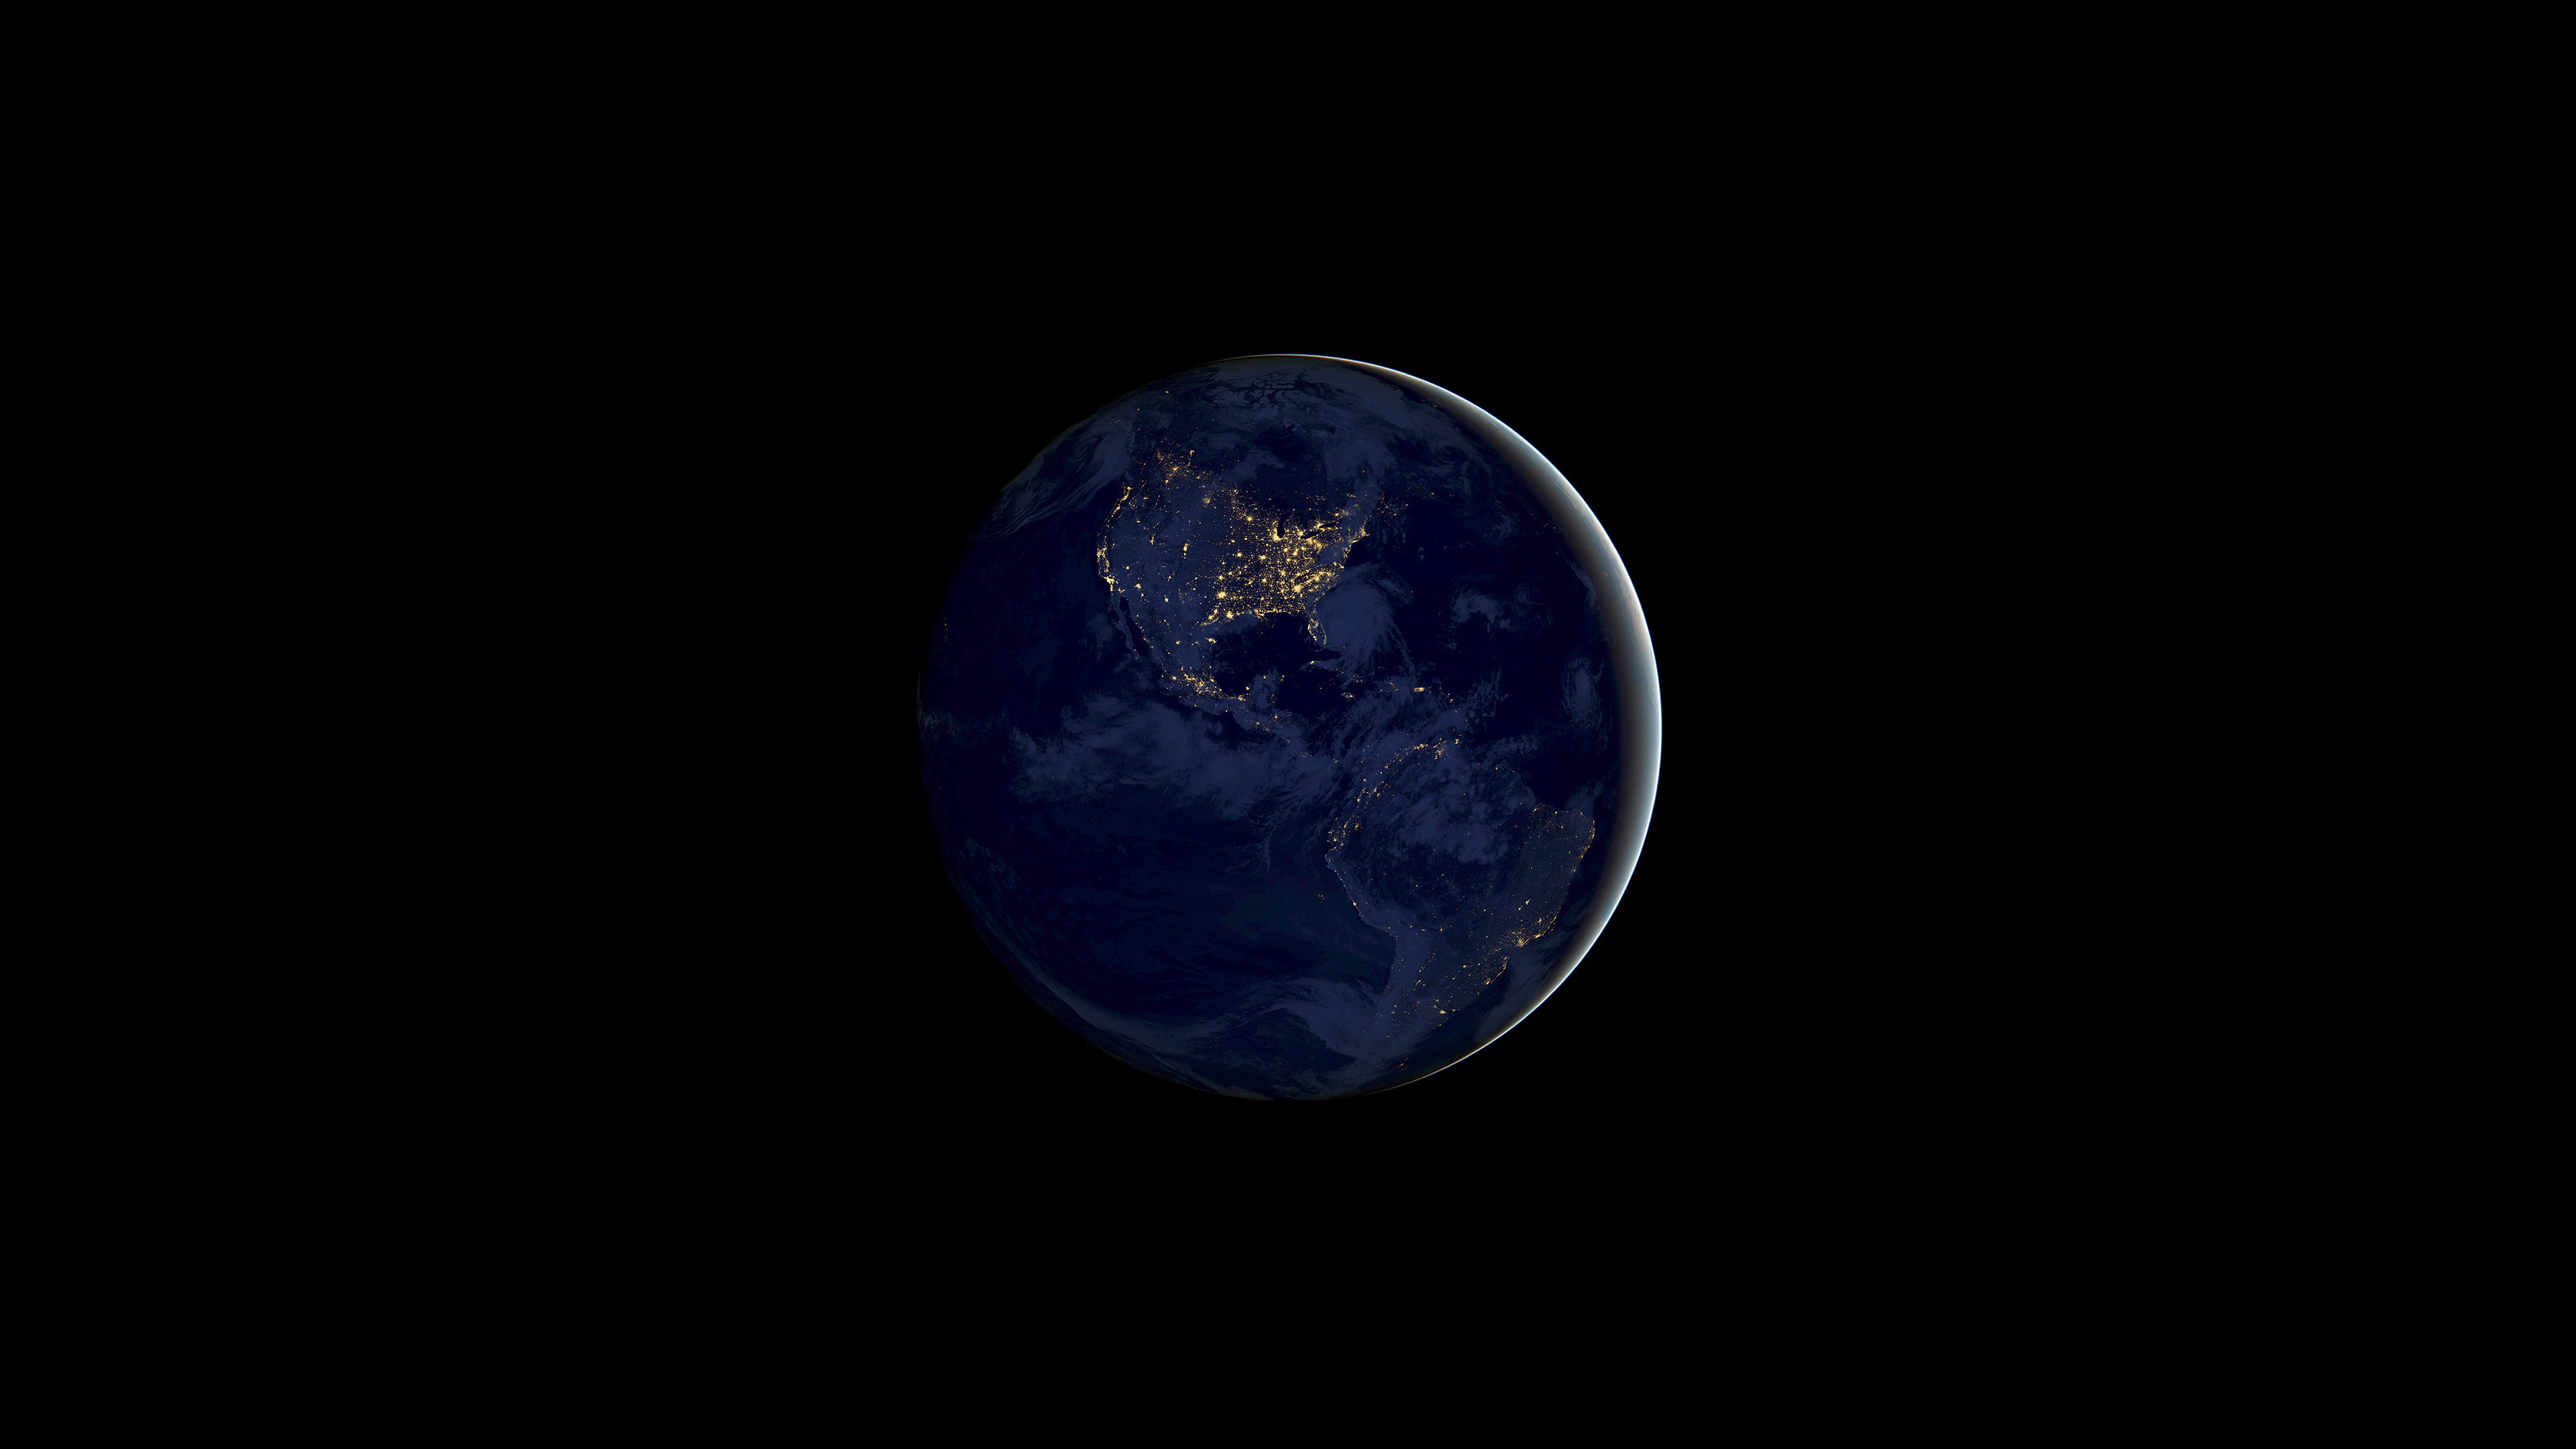 Wallpaper 4k Ios 11 Earth Night 4k 4k Wallpapers Apple